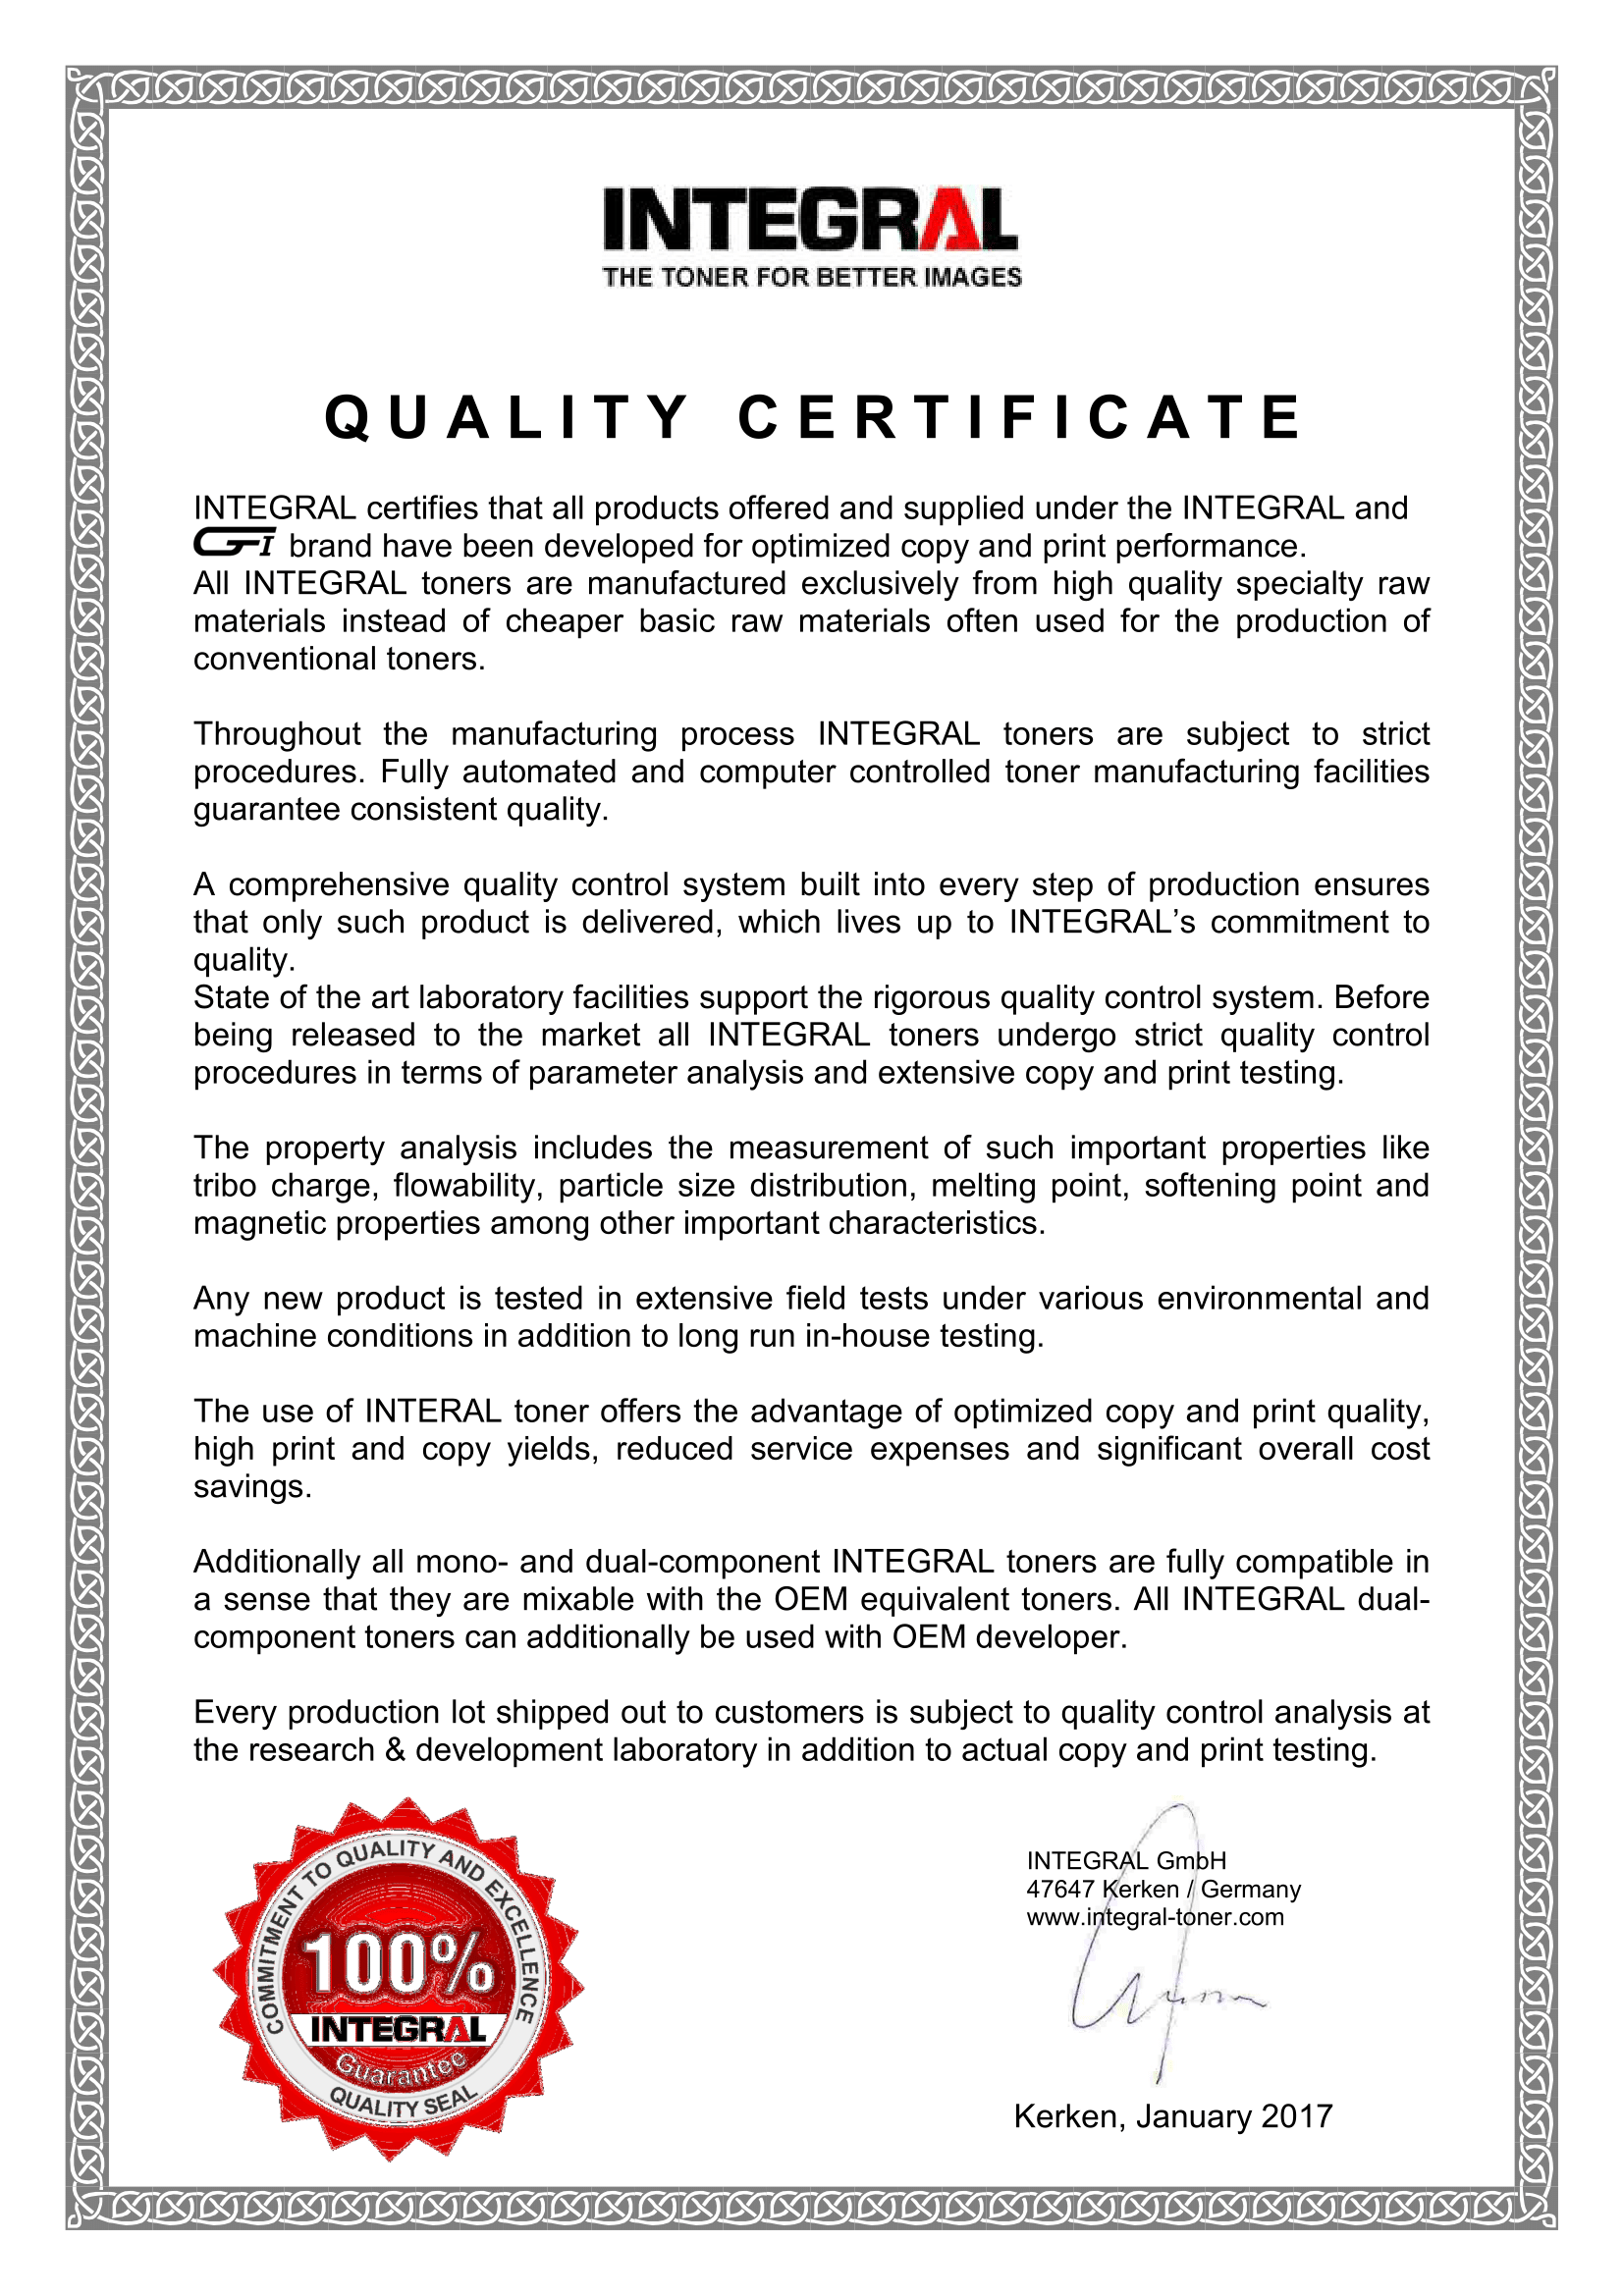 INTEGRAL_QUALITY_CERTIFICATE2017-1.png